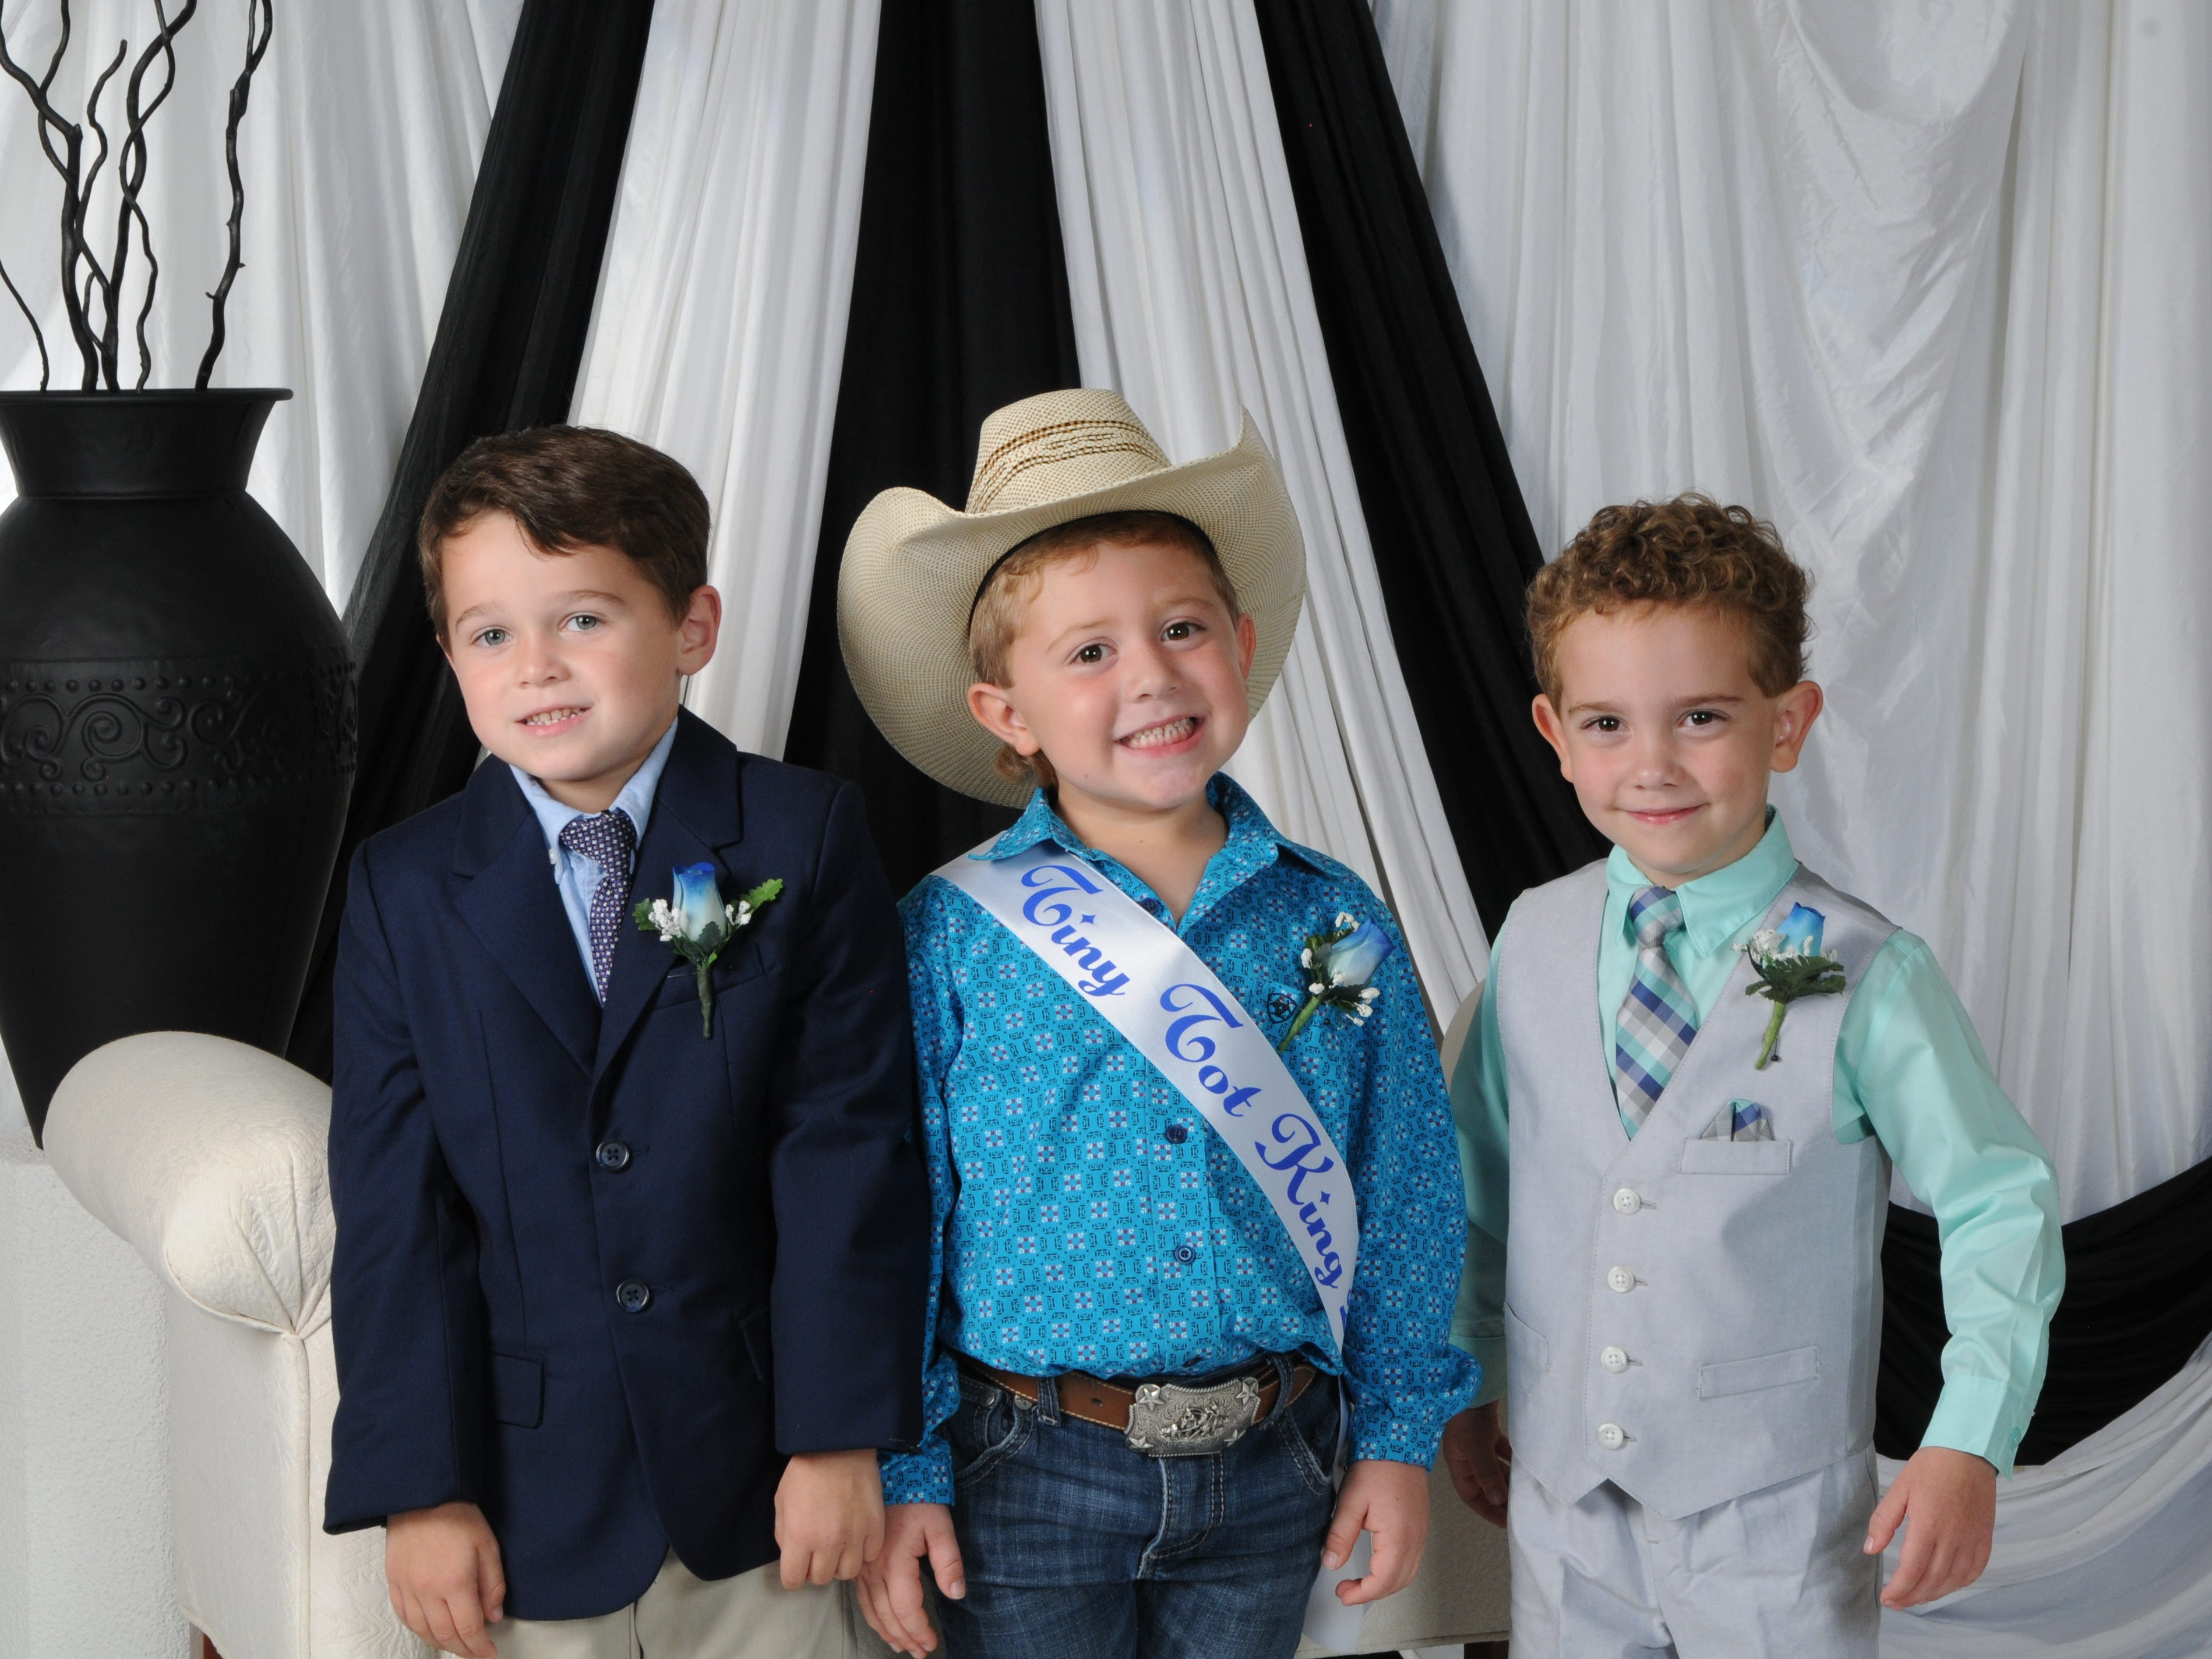 Kash Burleson (center, son of Brandon and Karissa Burleson of Mountain Home, was named Tiny Tot King at the annual Baxter County Fair Pageant on Saturday at Dunbar Auditorium. River Johnson (right), son of Bryan and Jessica Johnson of Mountain Home, was named first alternate; Henry Wunderlin (left), son of Timothy and Megan Wunderlin of Mountain Home, was named second alternate.